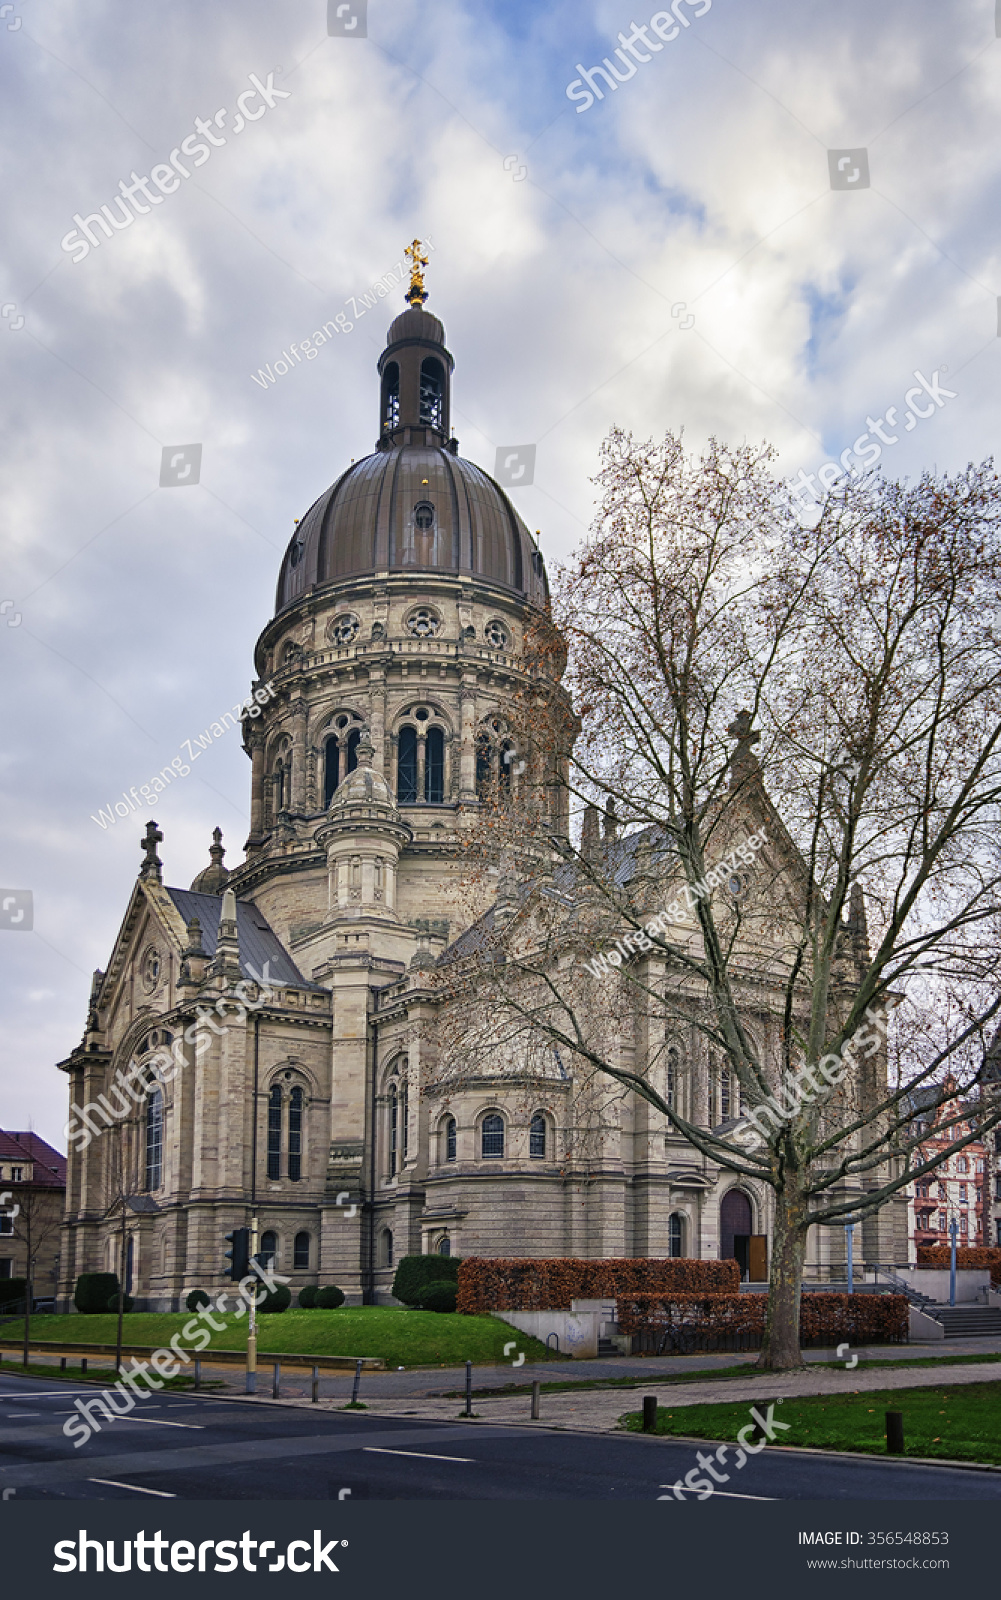 image christus church mainz germany stock photo 356548853 shutterstock. Black Bedroom Furniture Sets. Home Design Ideas